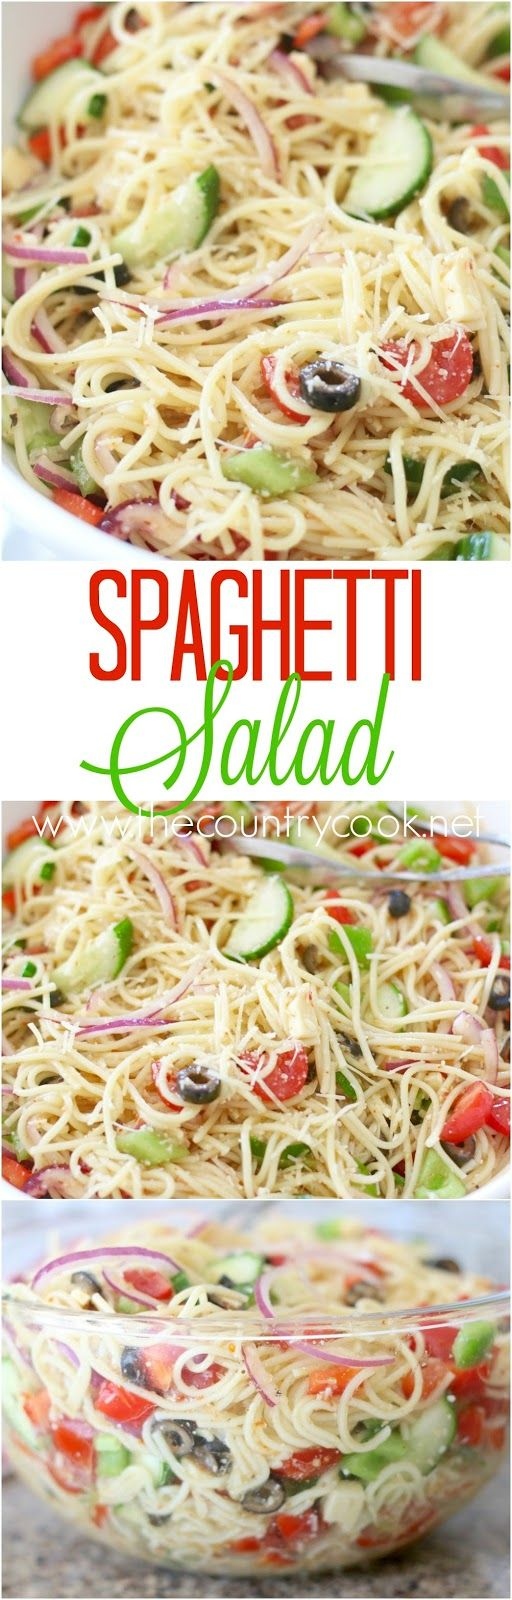 The Country Cook: Spaghetti Salad